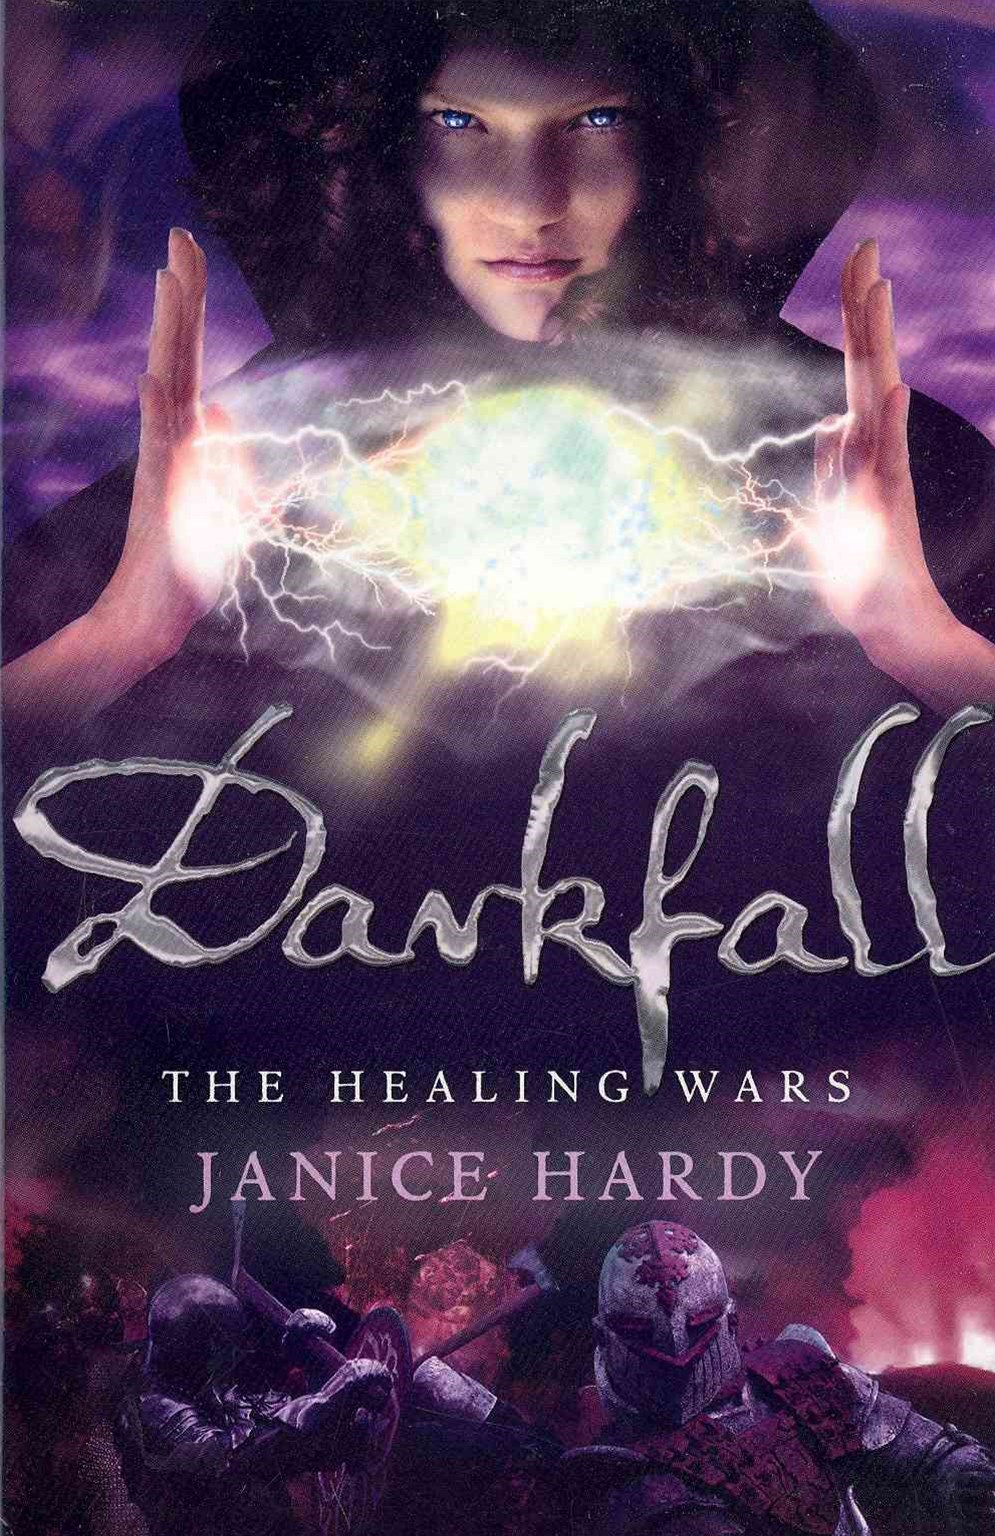 The Healing Wars (3): Darkfall